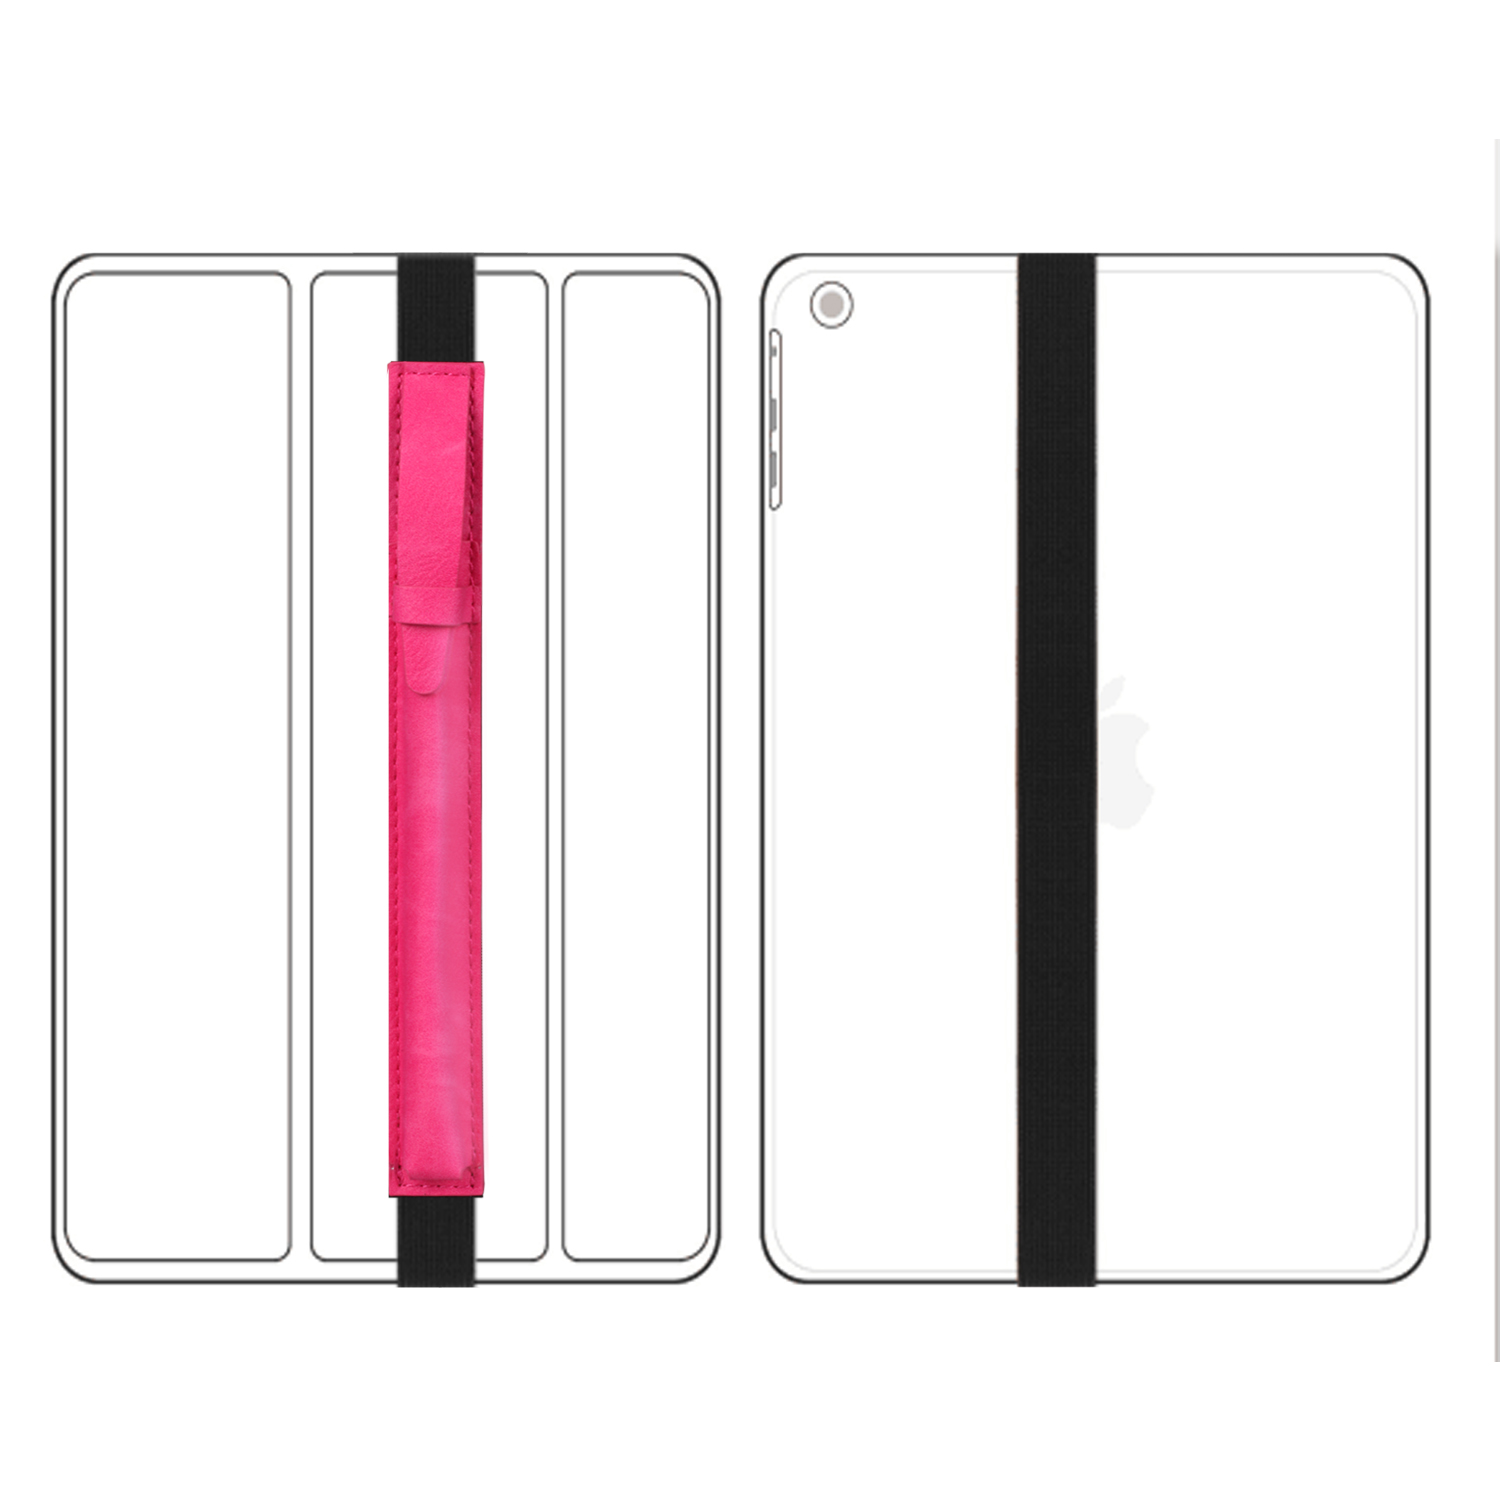 For-Apple-Pencil-Case-Leather-iPad-Pen-Cover-Sleeve-Pouch-Bag-Holder-Protector thumbnail 37